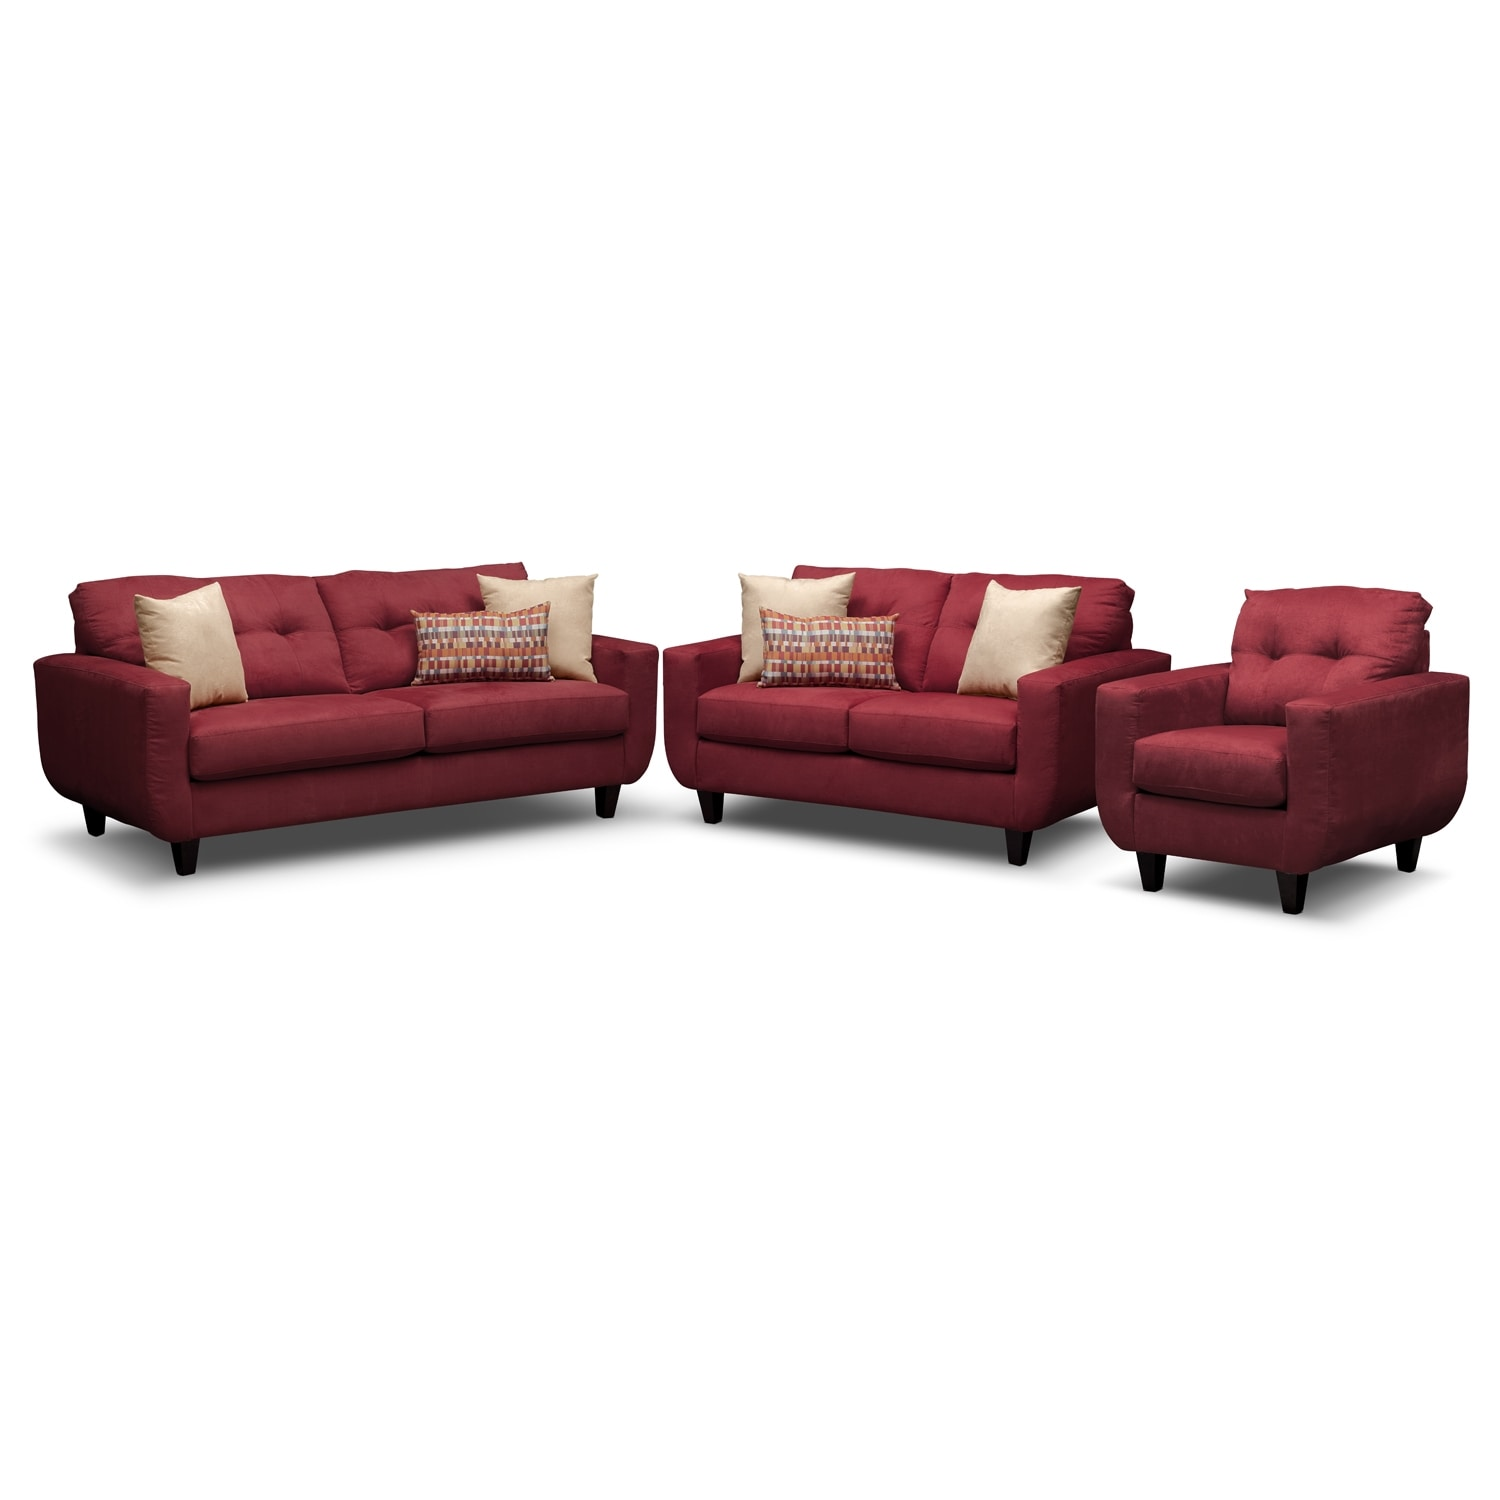 Living Room Furniture - West Village Red 3 Pc. Living Room